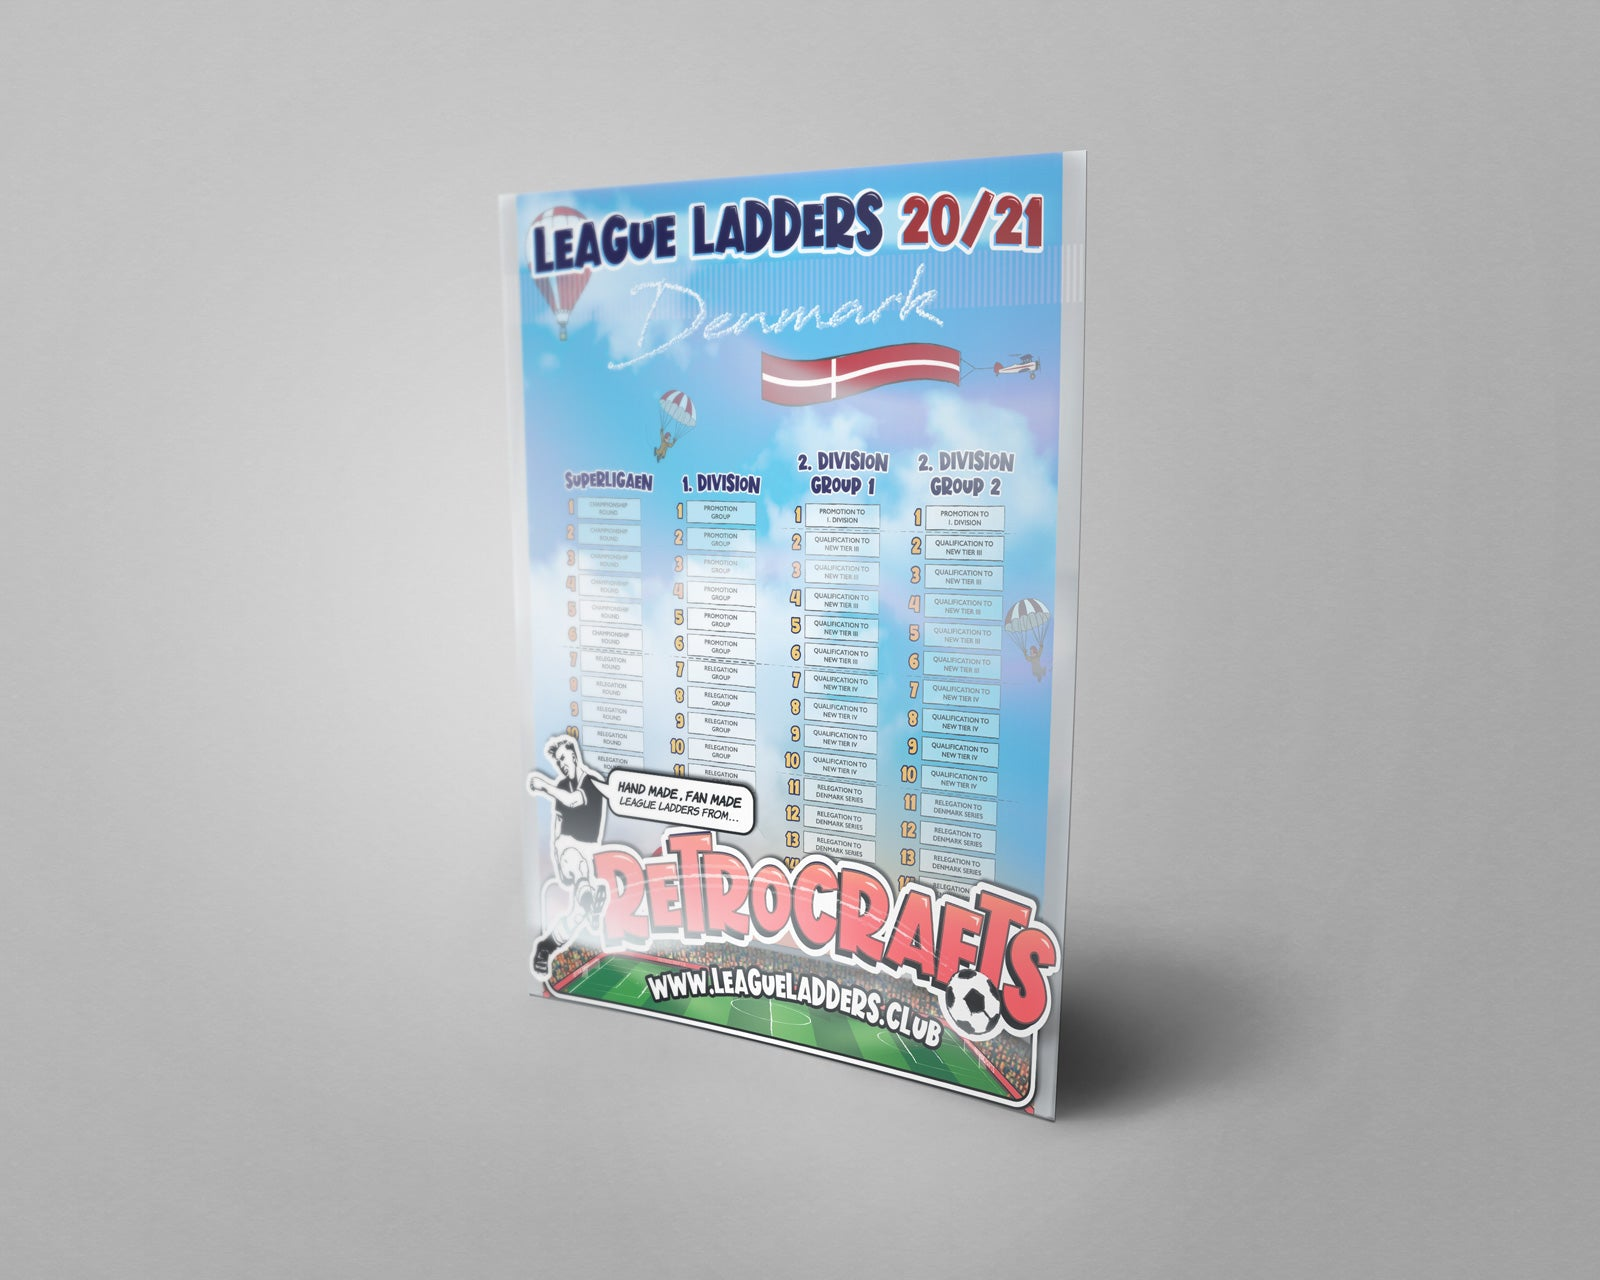 Denmark Football League Tiers 1-3 2020/21 Season League Ladders